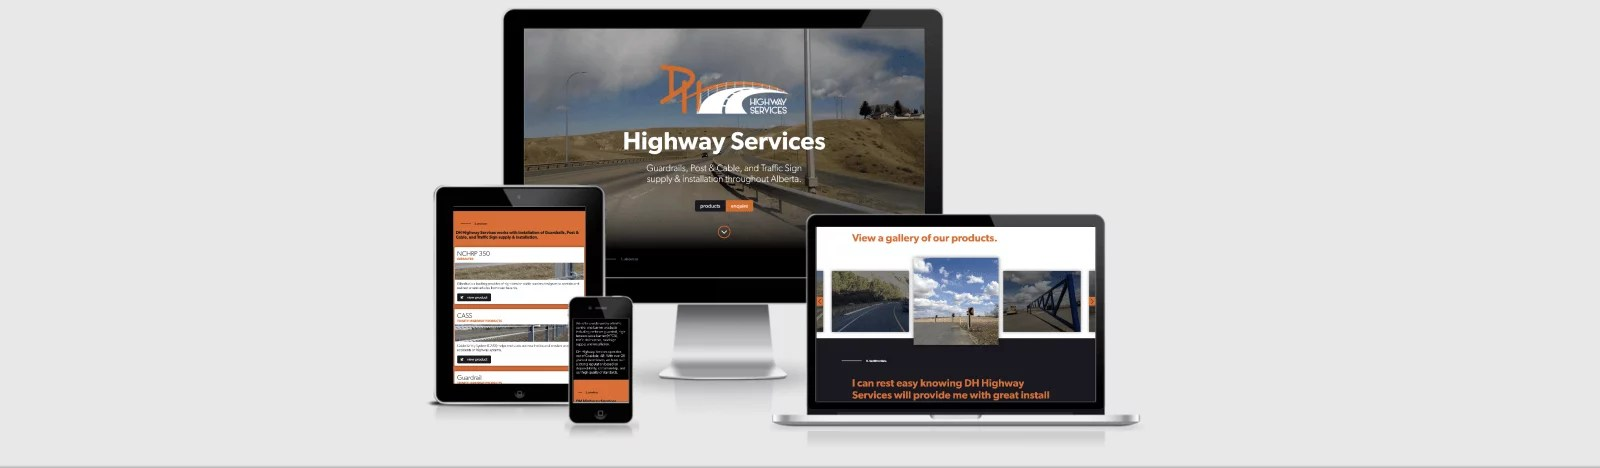 Web Design Markup for DH Fencing Services by Artrageous Advertising